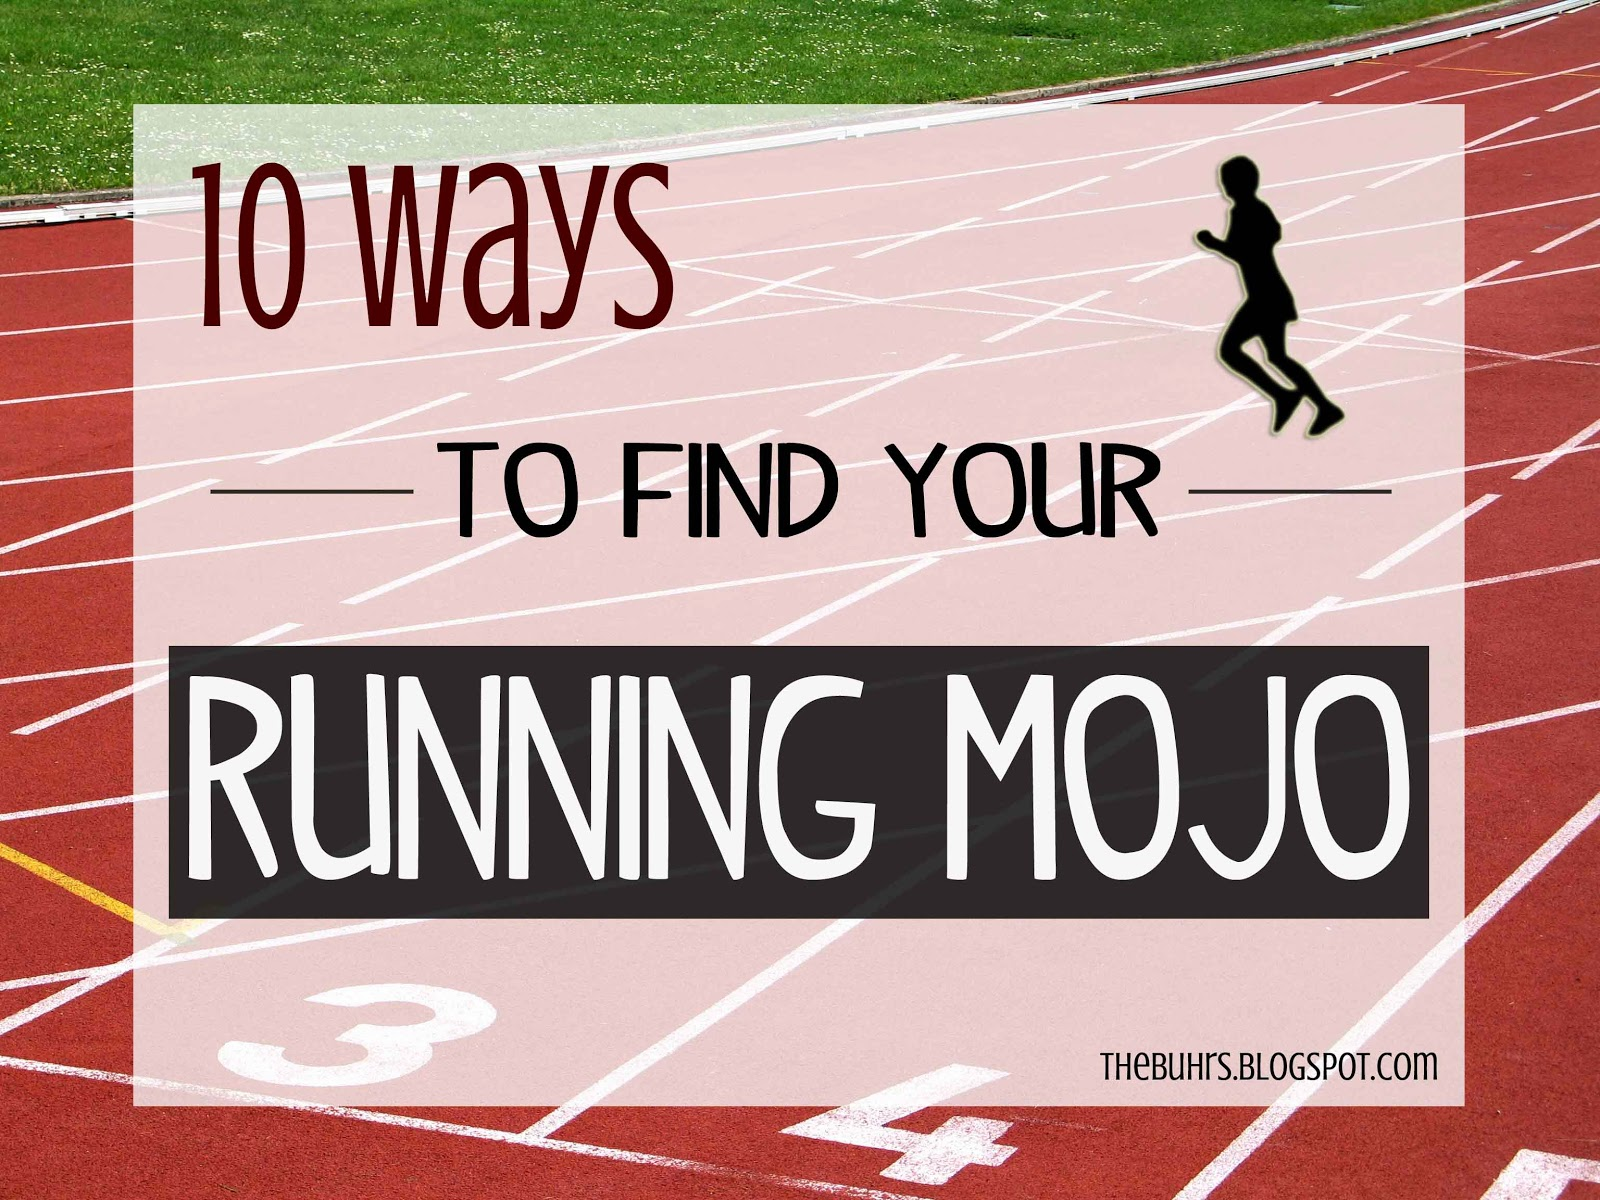 10-Ways-To-Find-Your-Running-Mojo